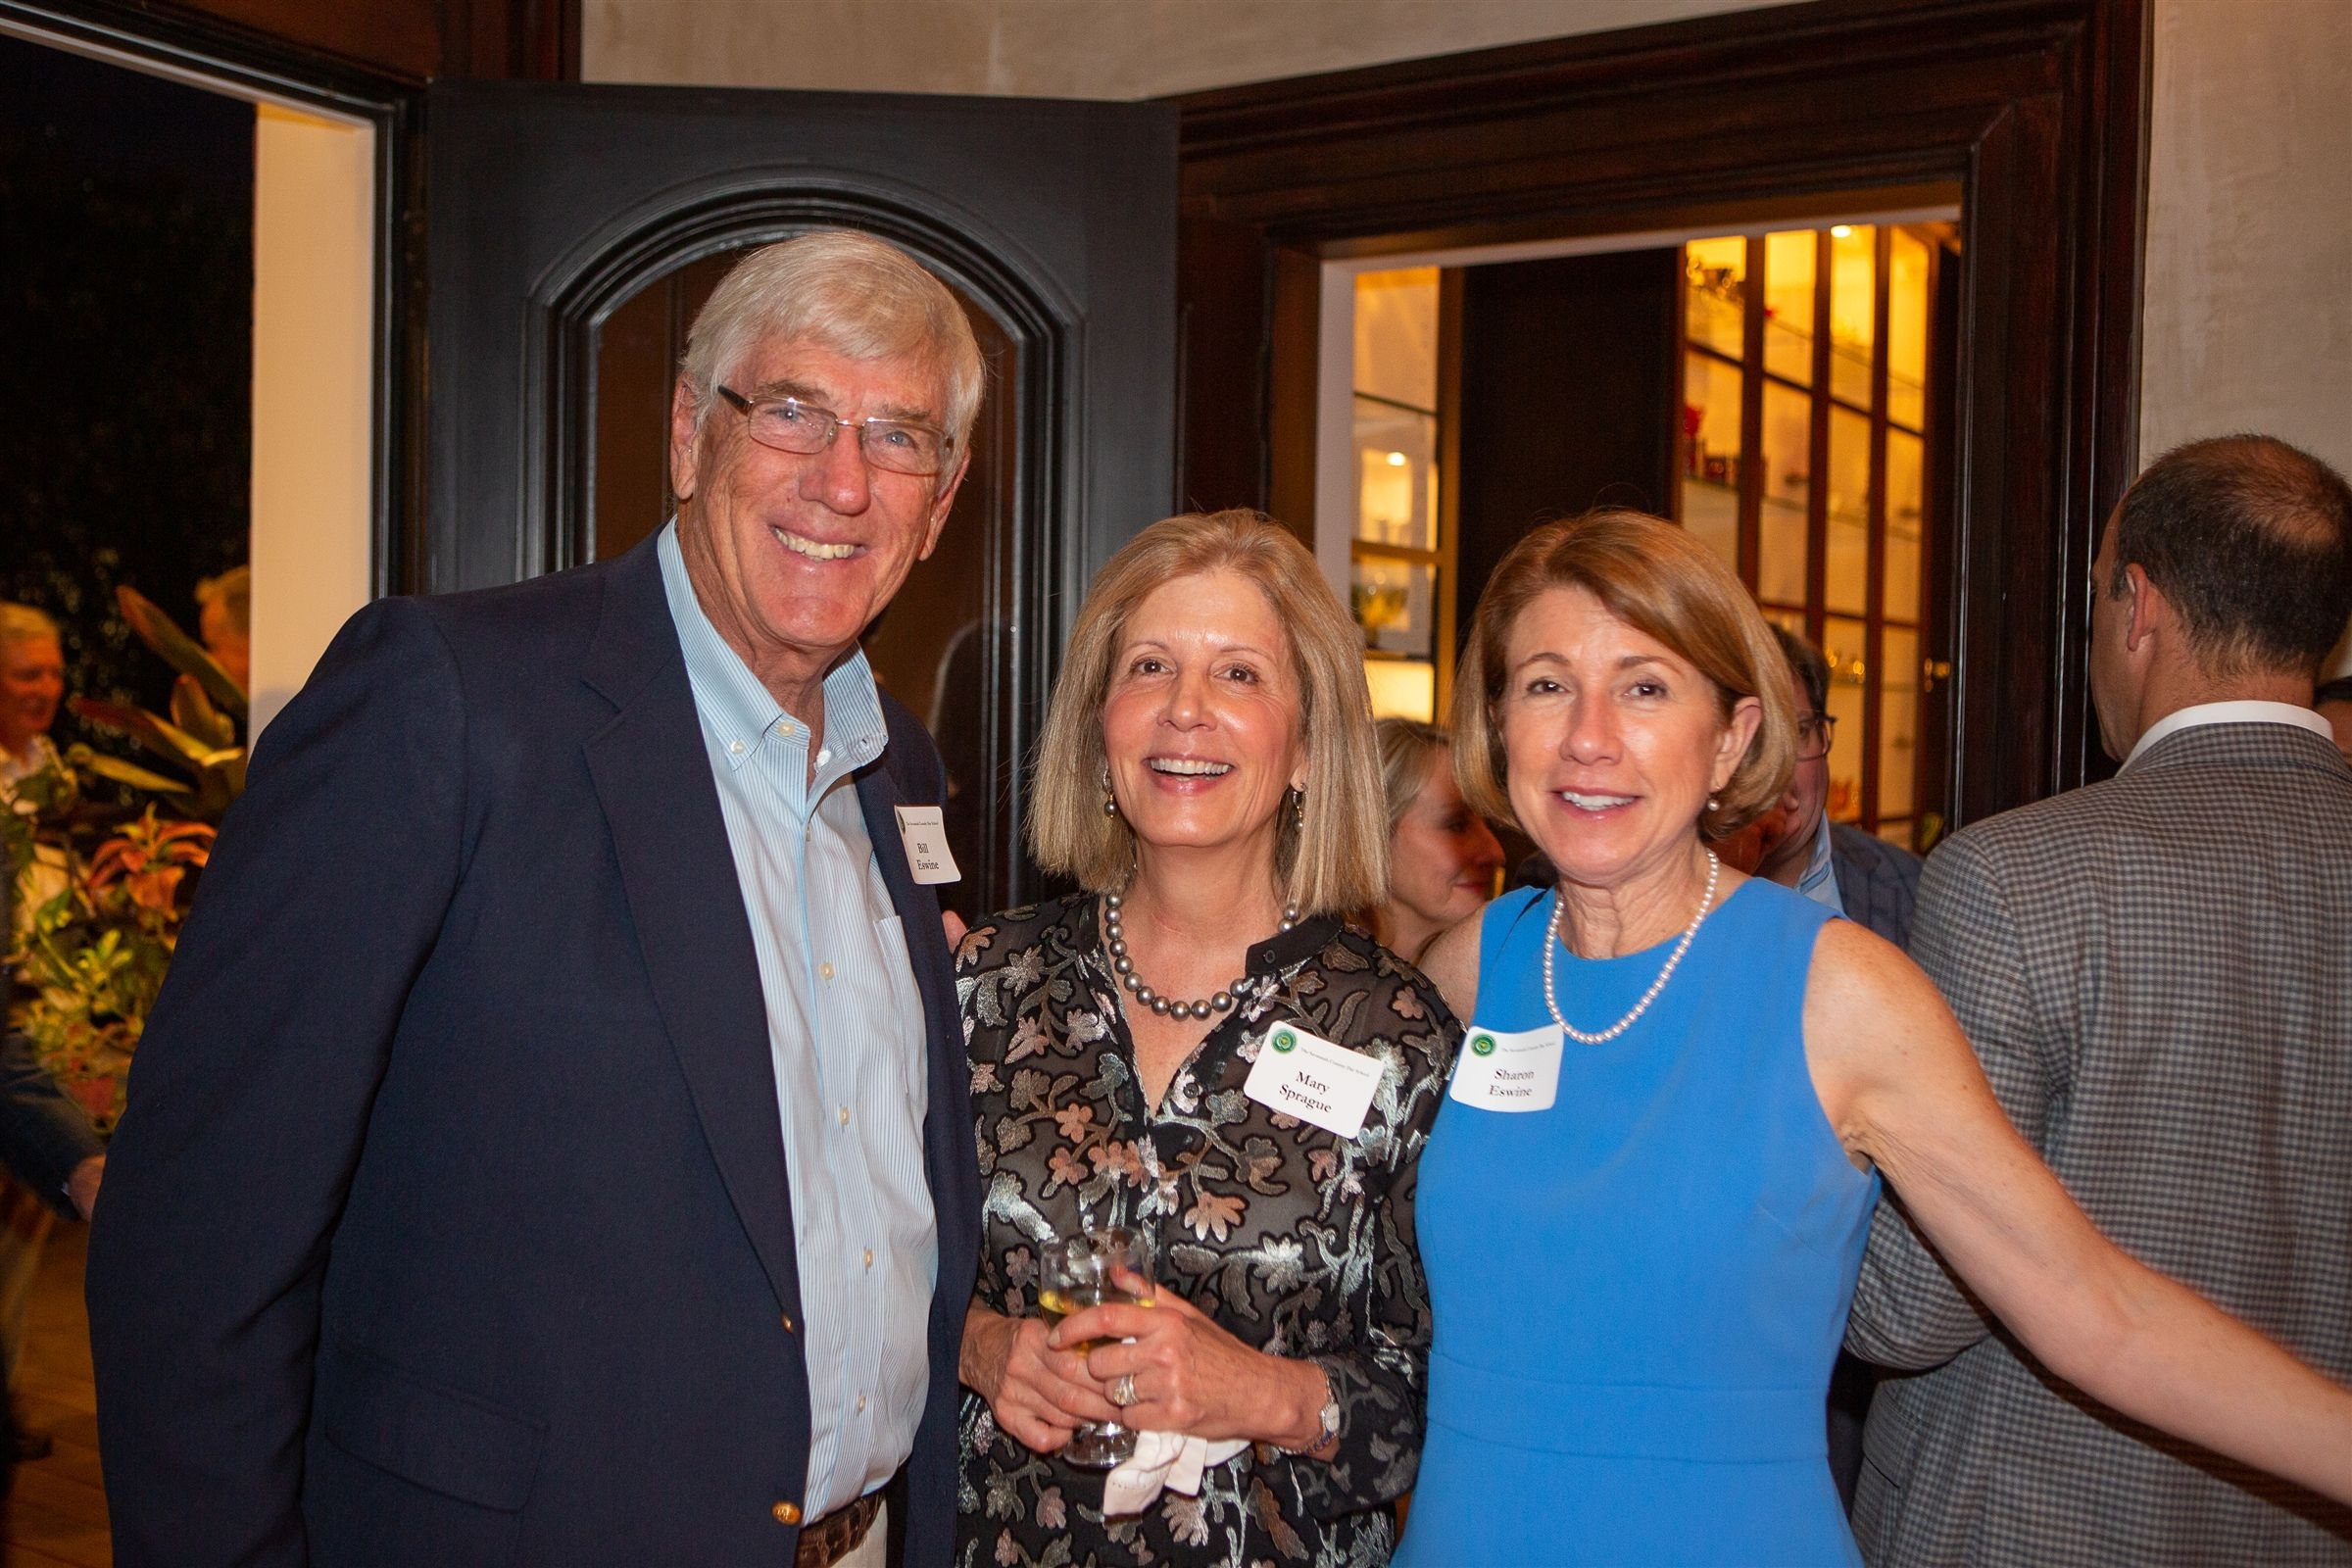 Sharon & Bill Eswine with Board of Trustees President, Mary Sprague